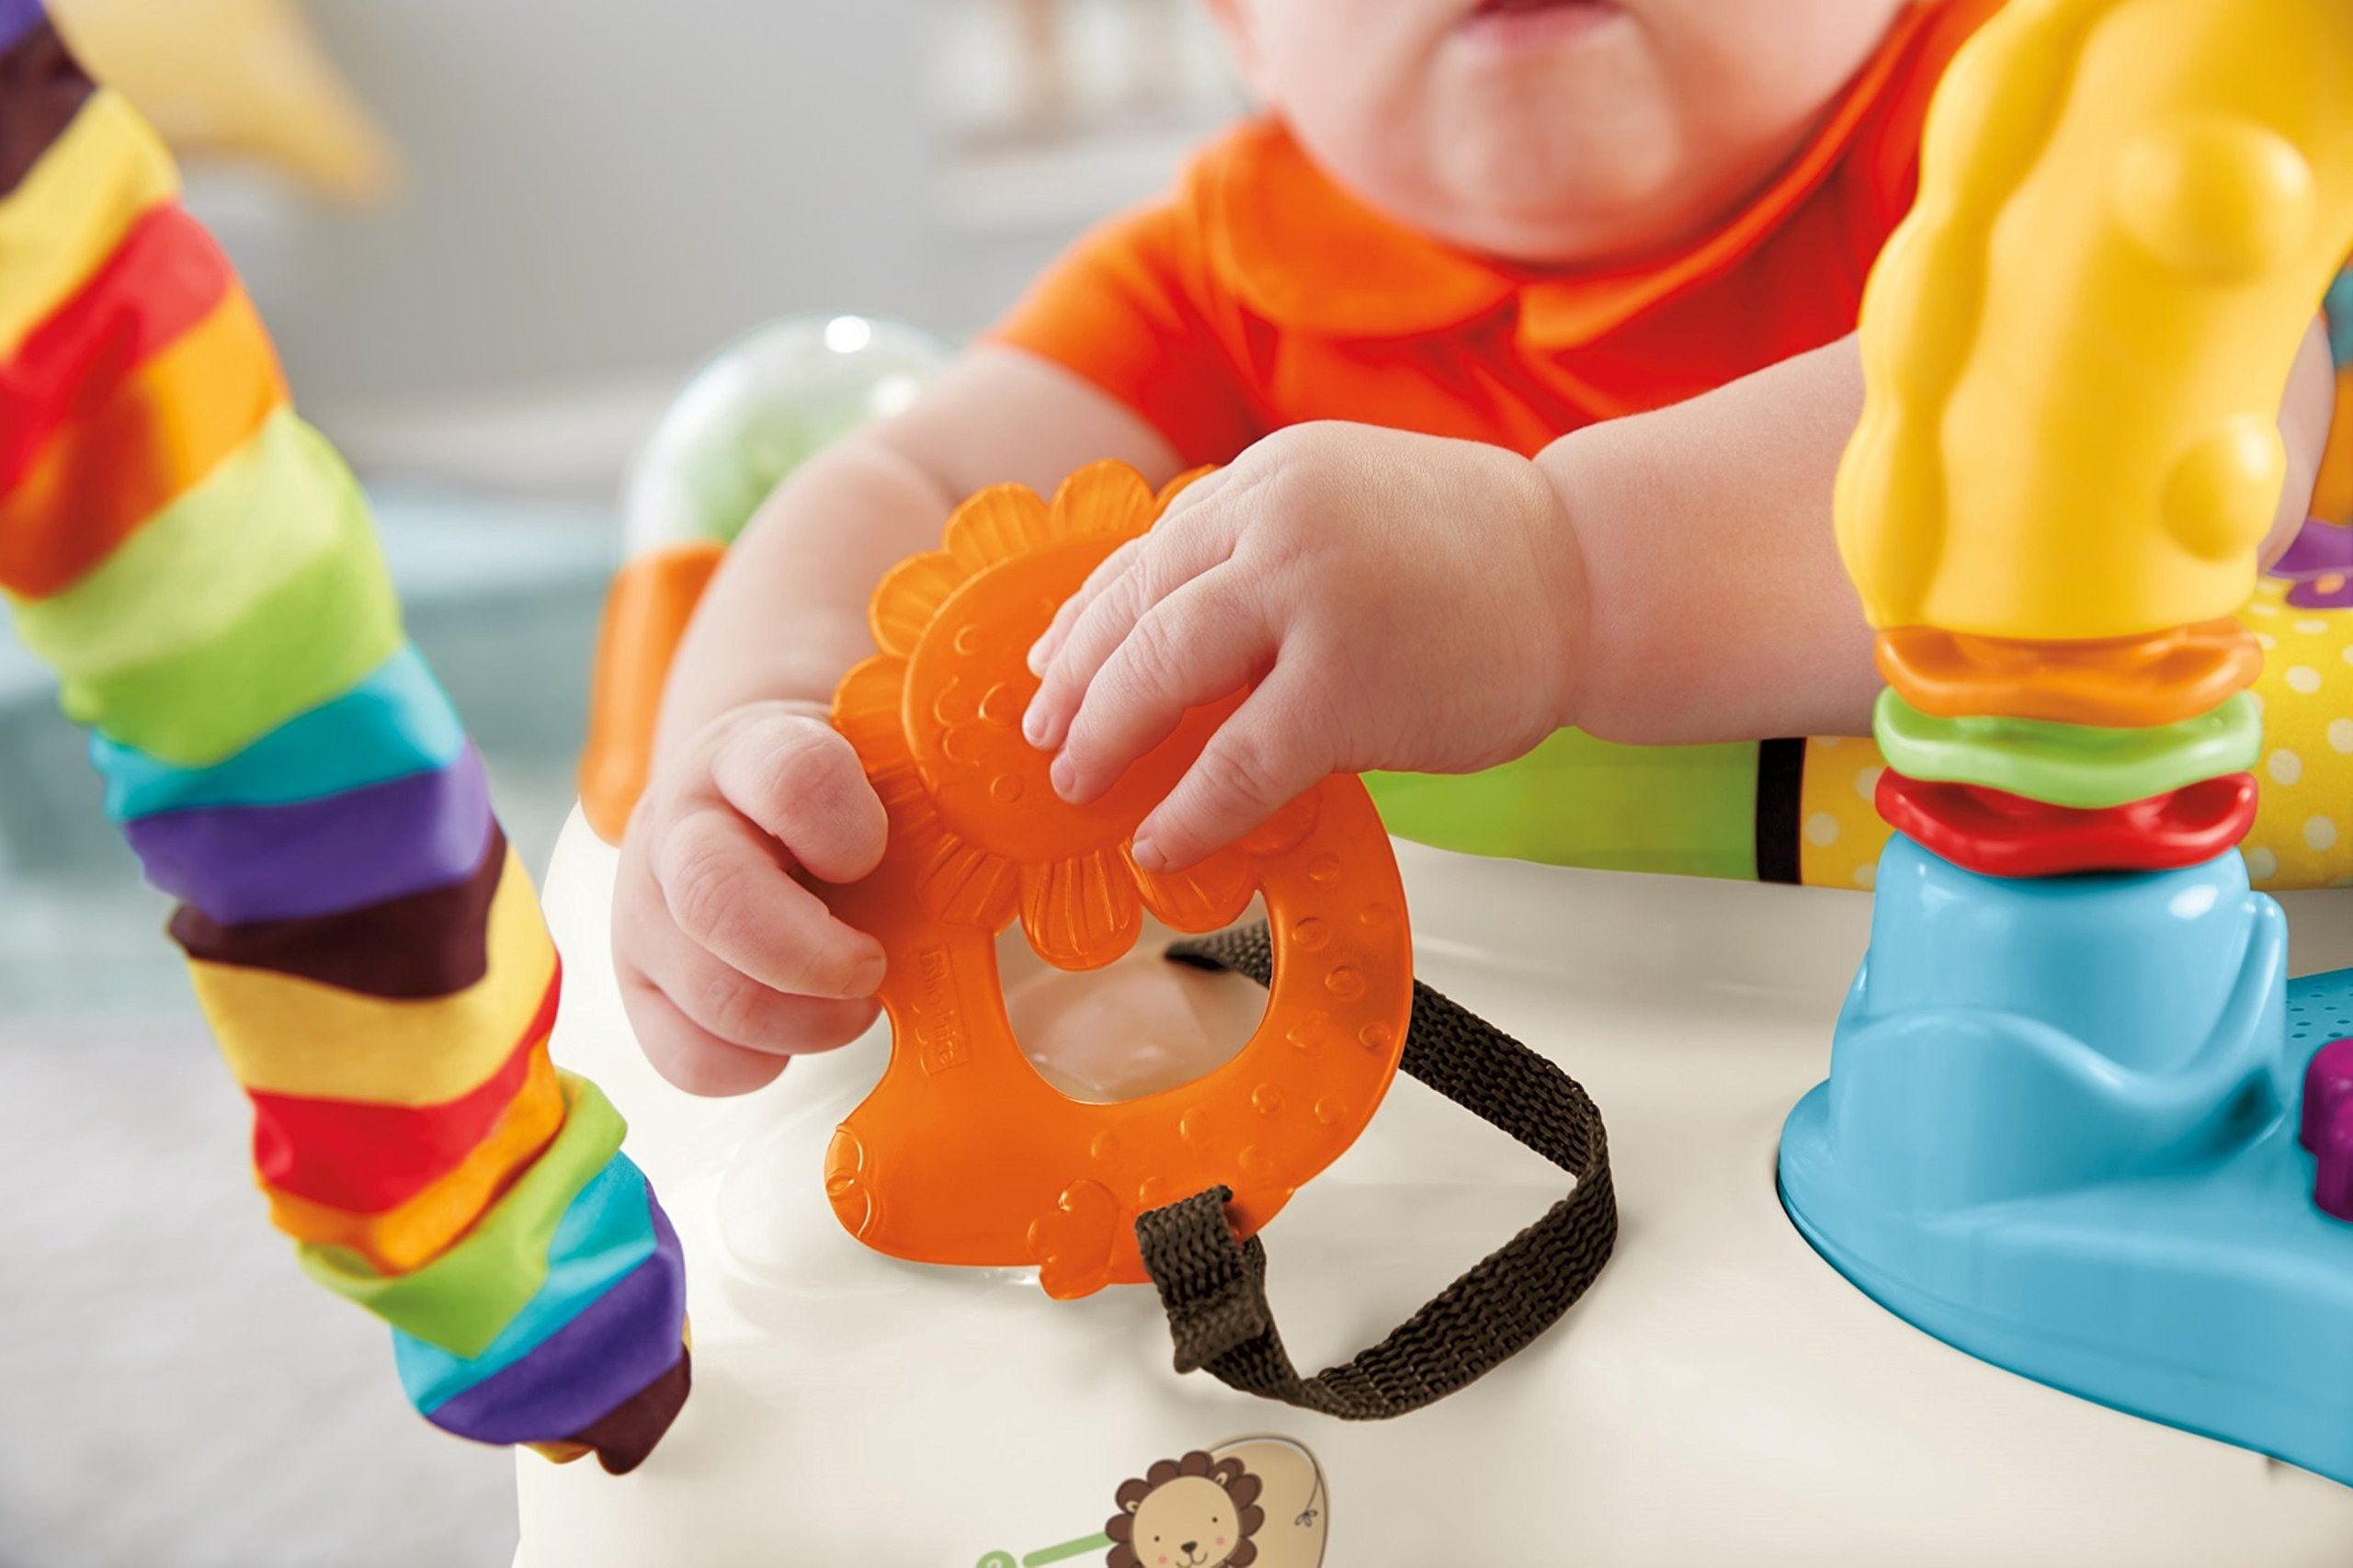 Fisher Price Jumperoo Luv U Zoo Ad Price Fisher Jumperoo Zoo In 2020 Baby Jumper Toy Fisher Price Jumperoo Toddler Activities